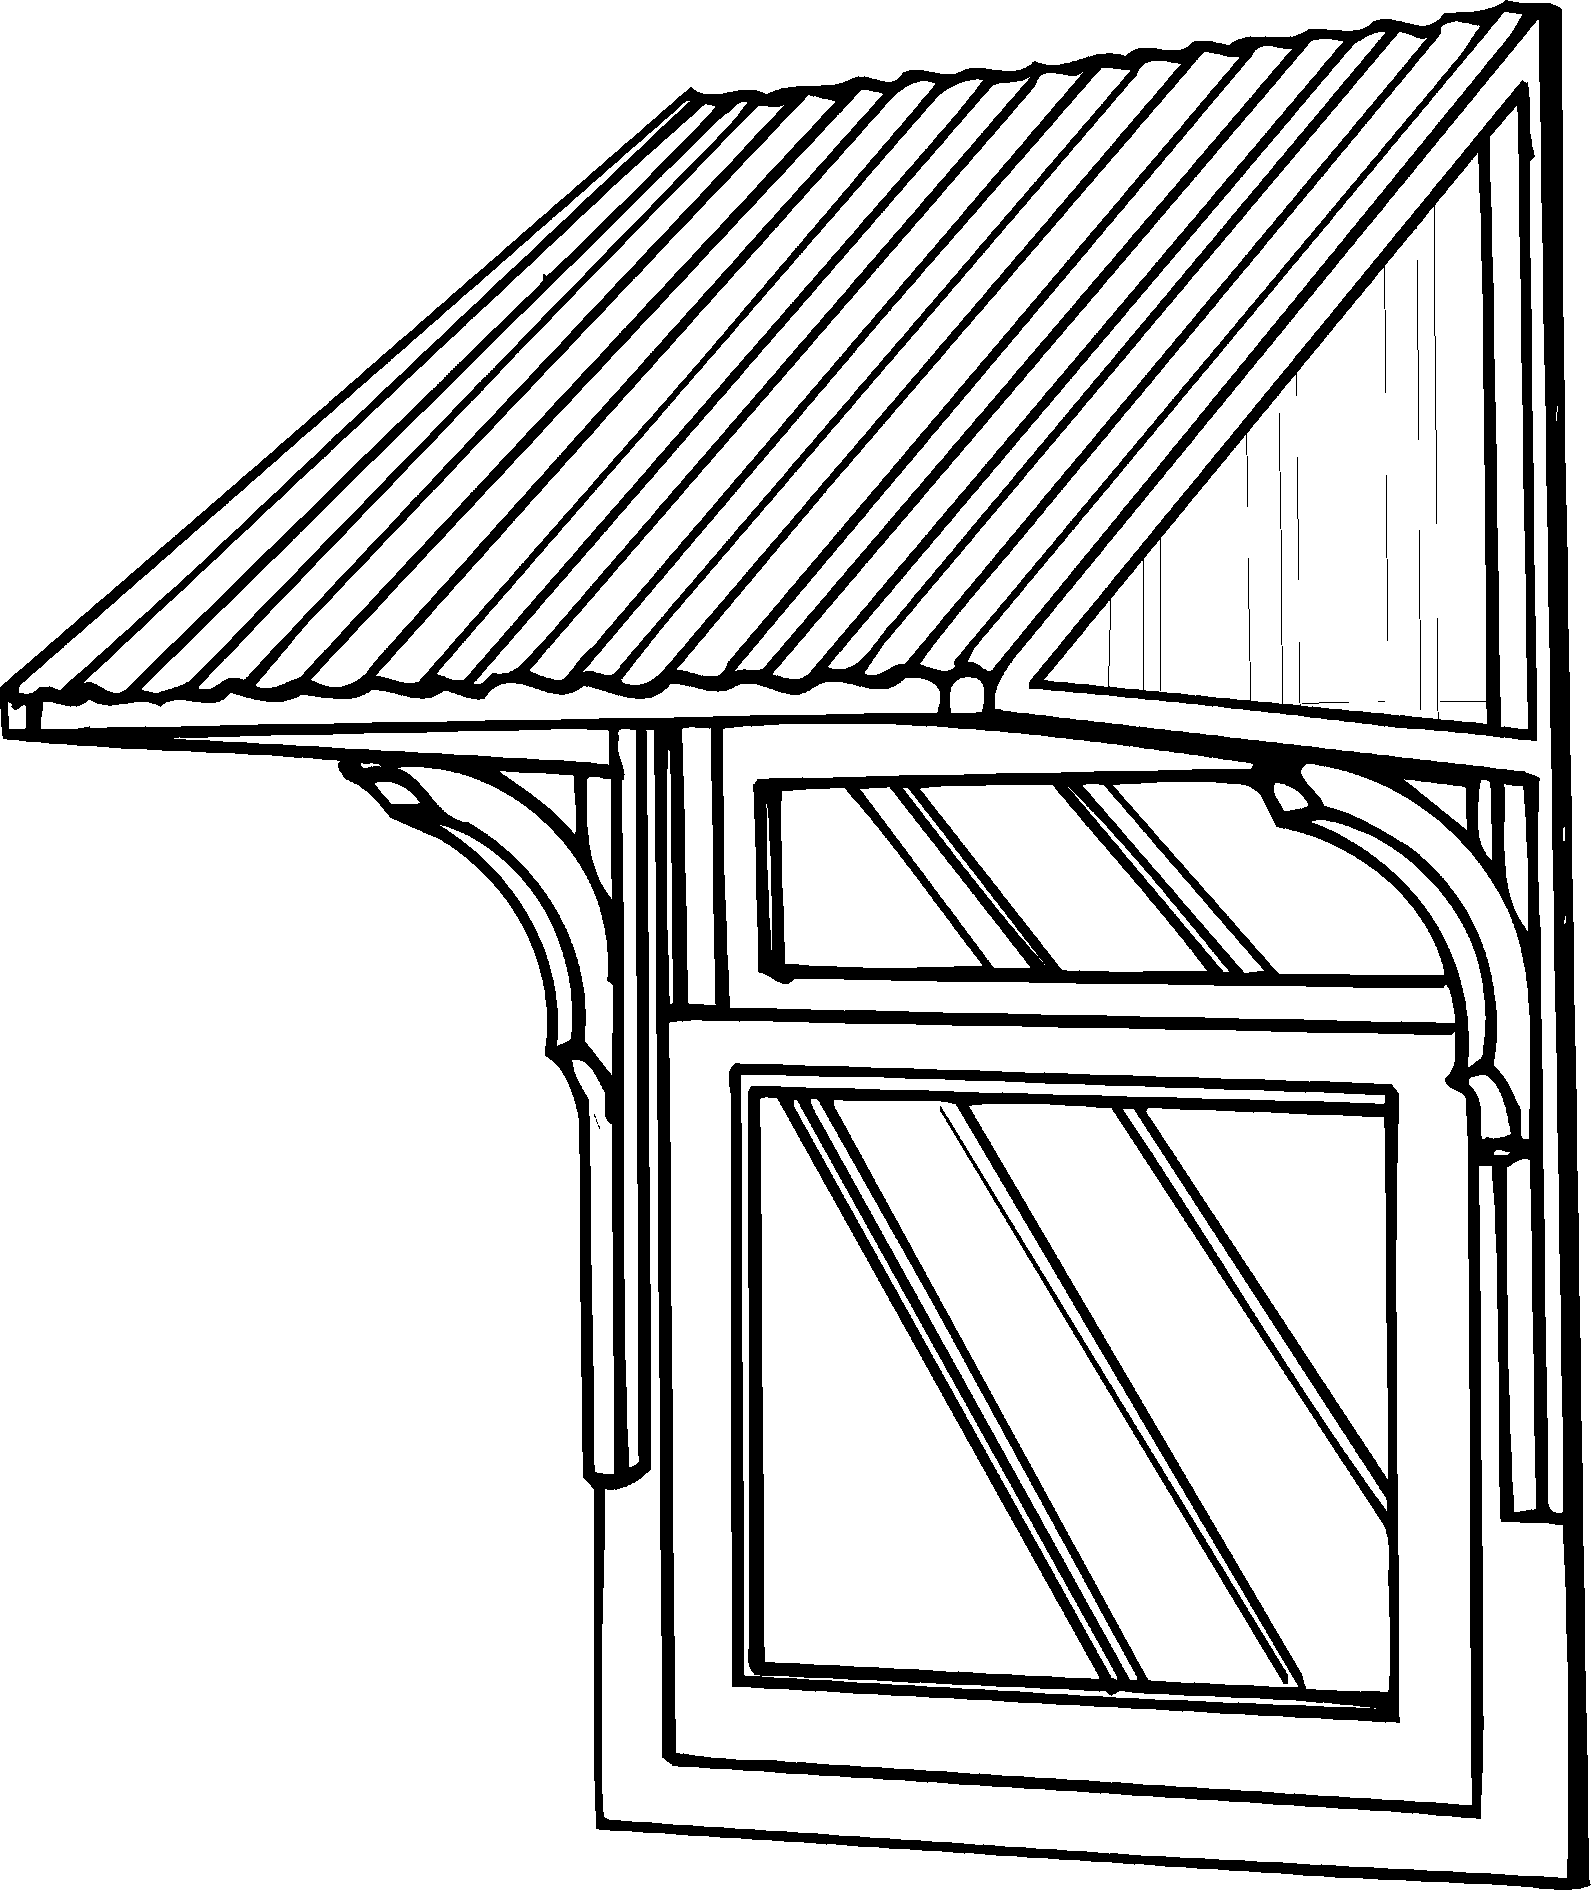 Bunnings Timber Window Awnings Heritage Door And Window Canopy Brackets Bunnings